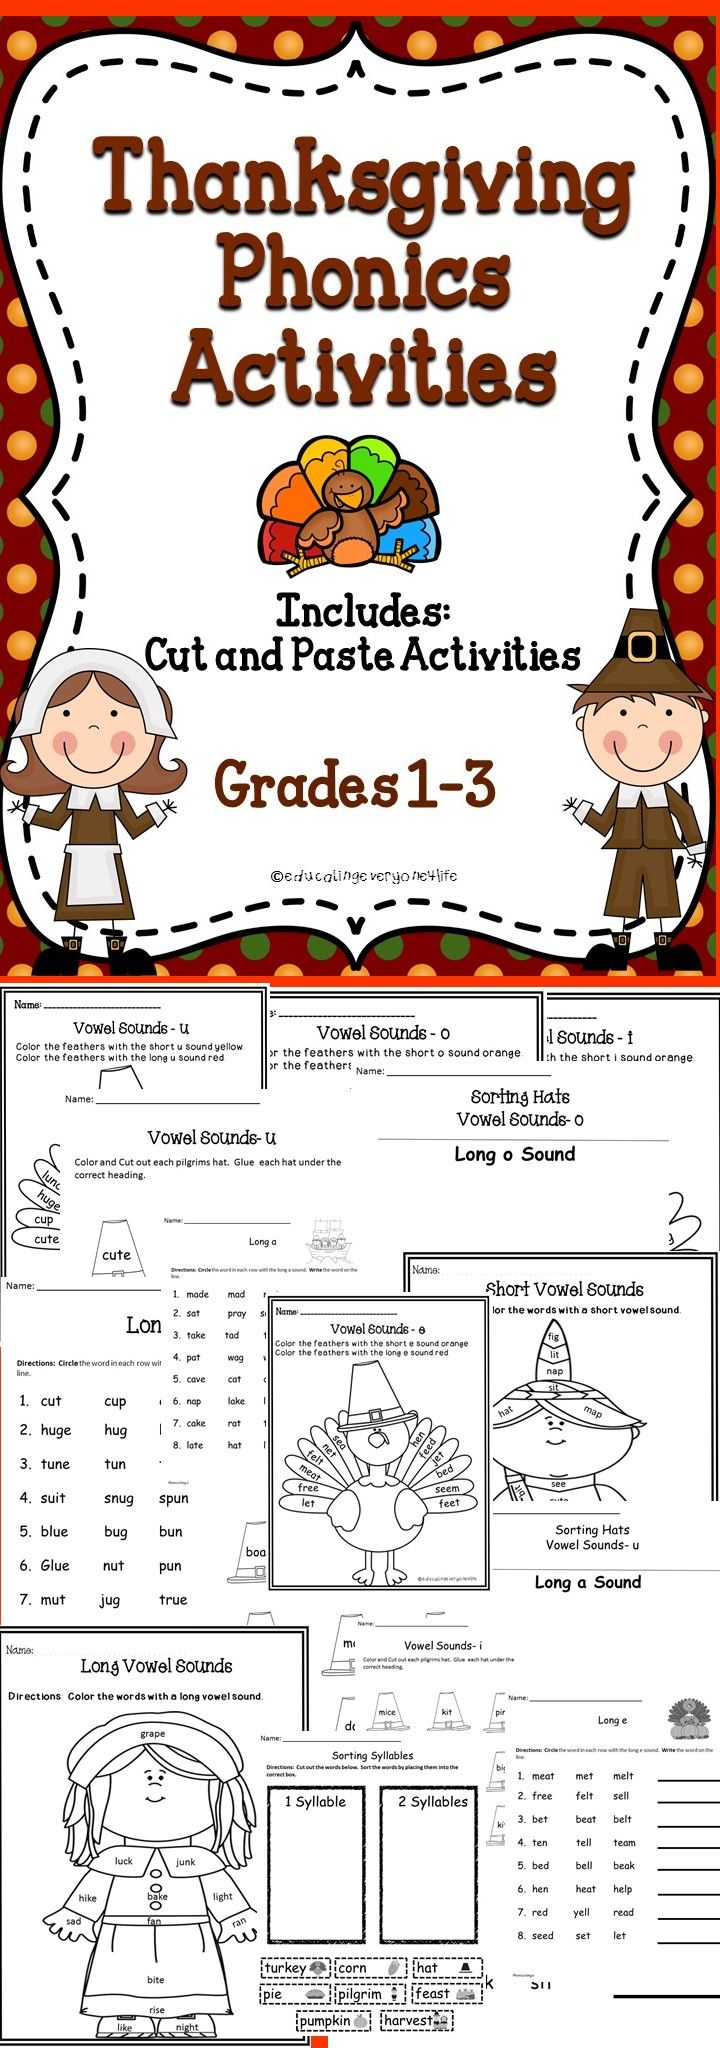 Thanksgiving Phonics Activity - Fun Thanksgiving Activities For The Classroom! #tpt #Thanksgiving #Phonics